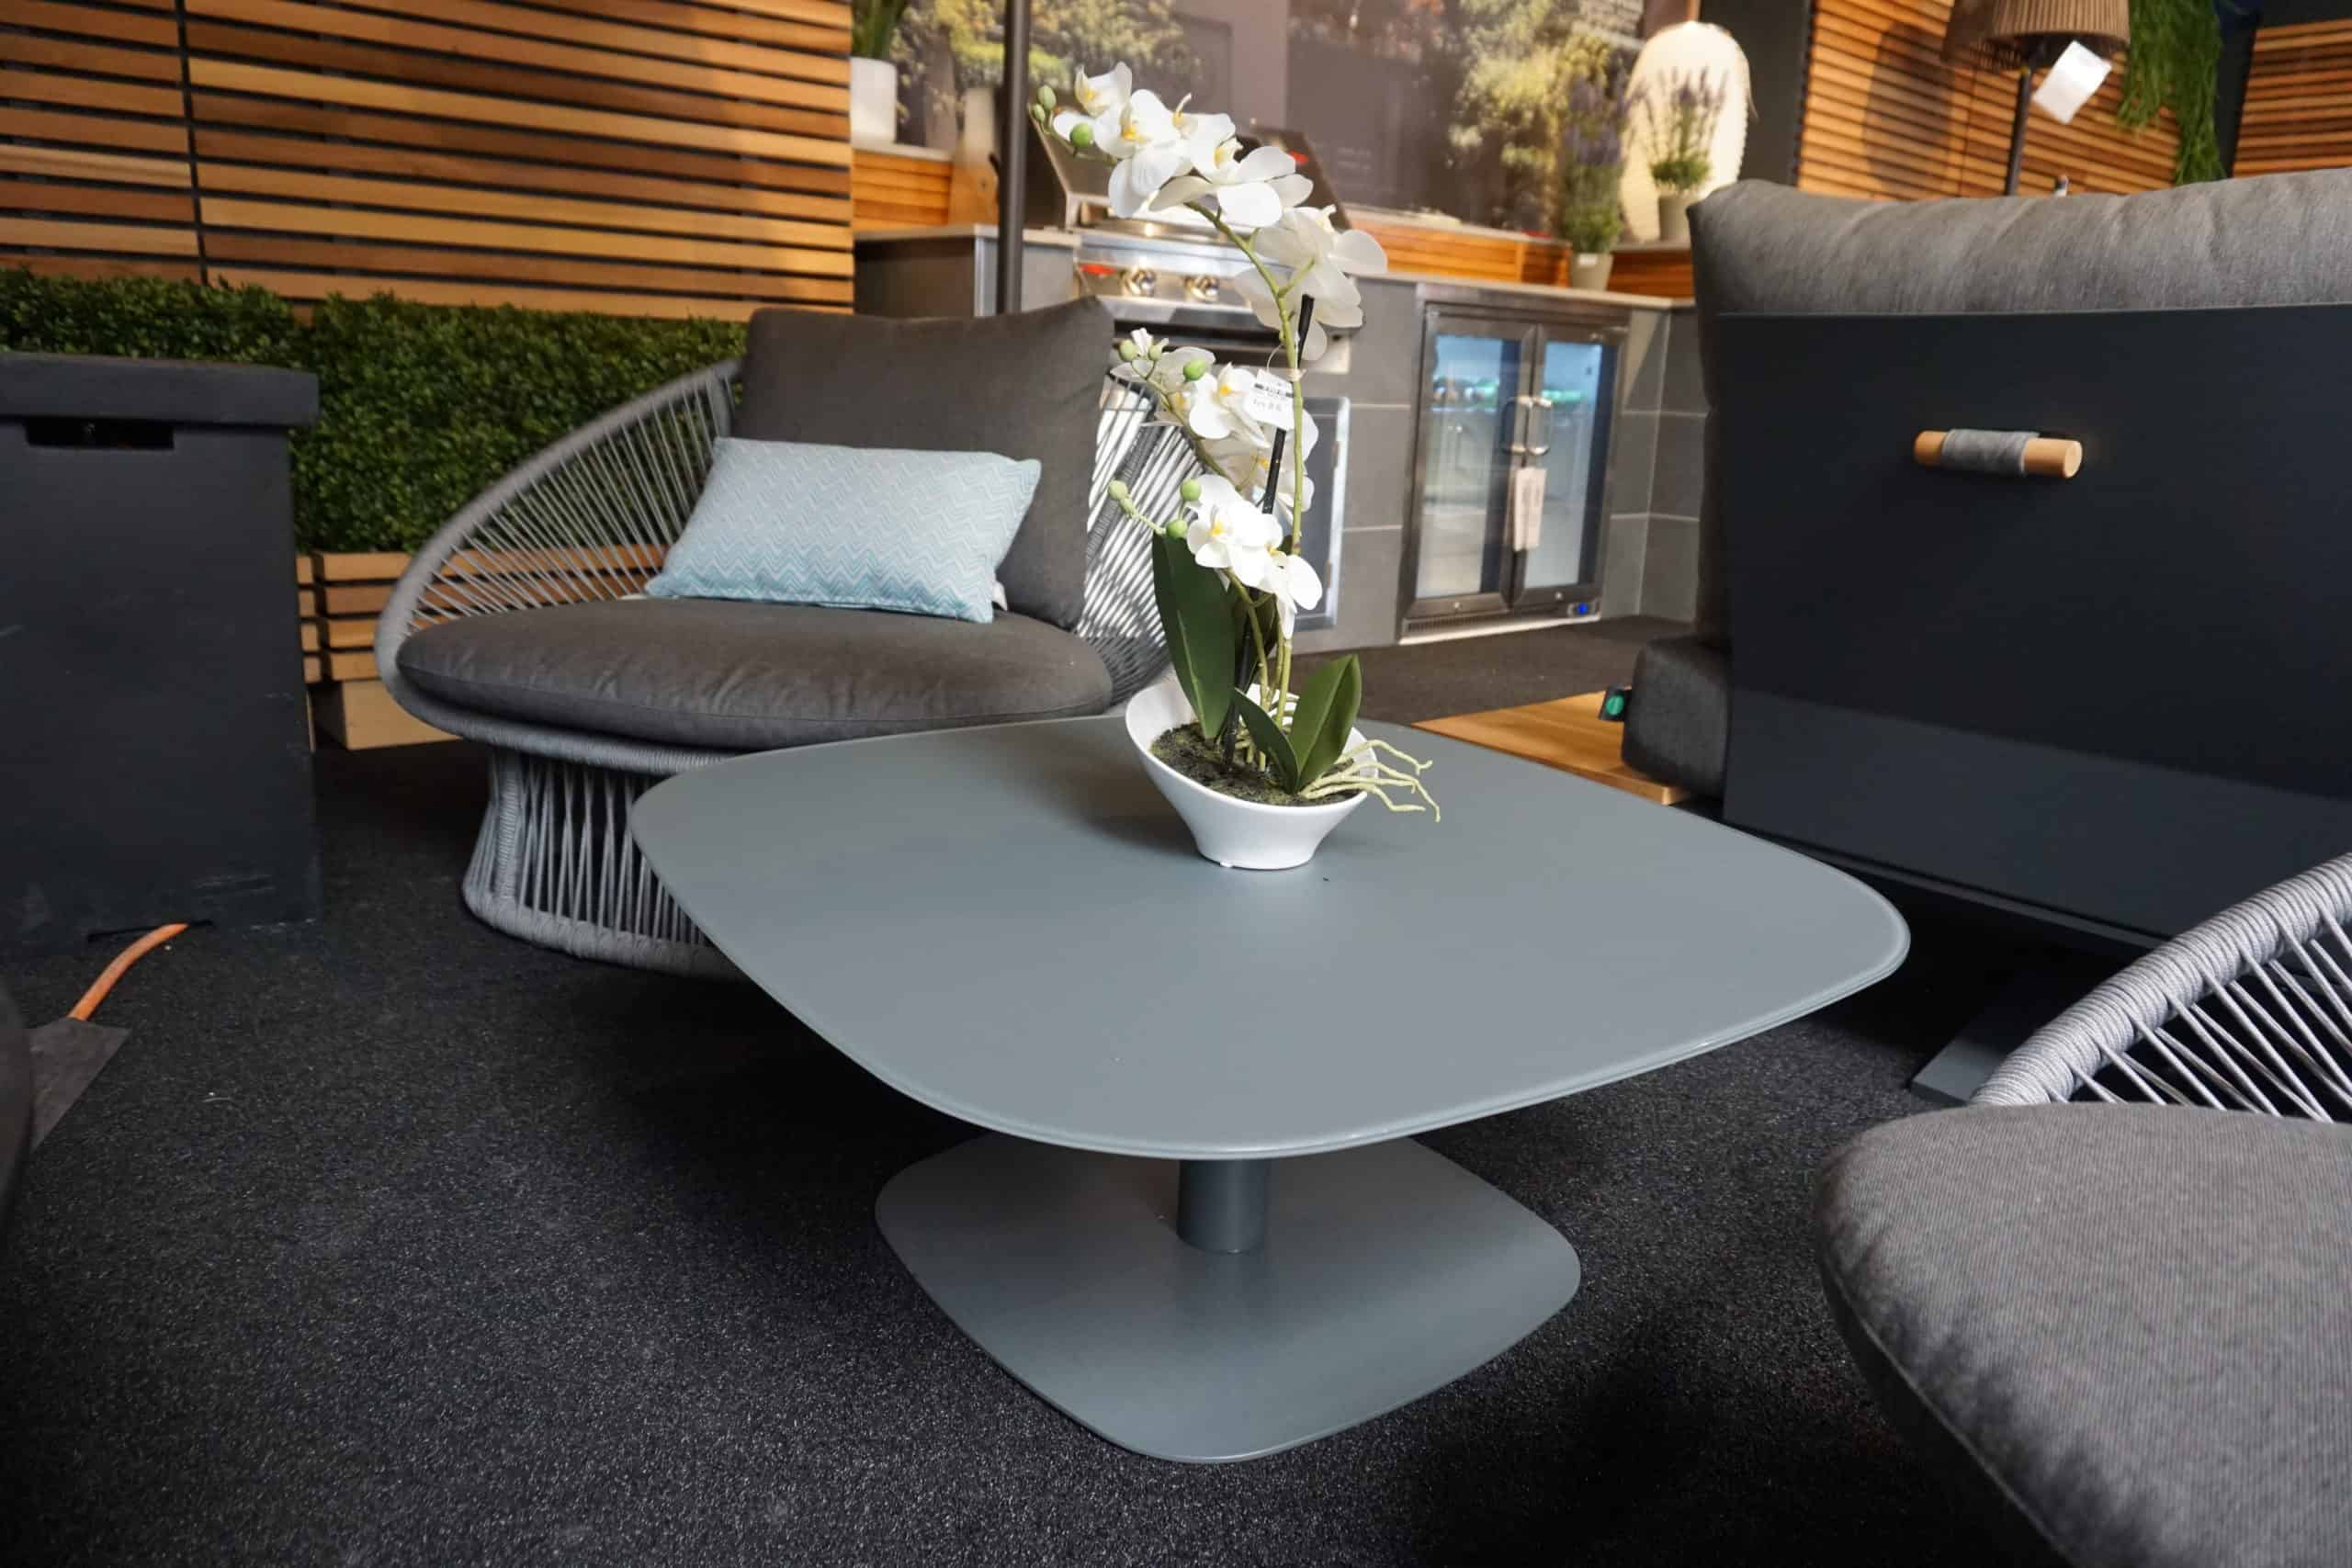 Spade Alu Coffee Table 39cm - Garden Furniture For Sale Dublin Ireland